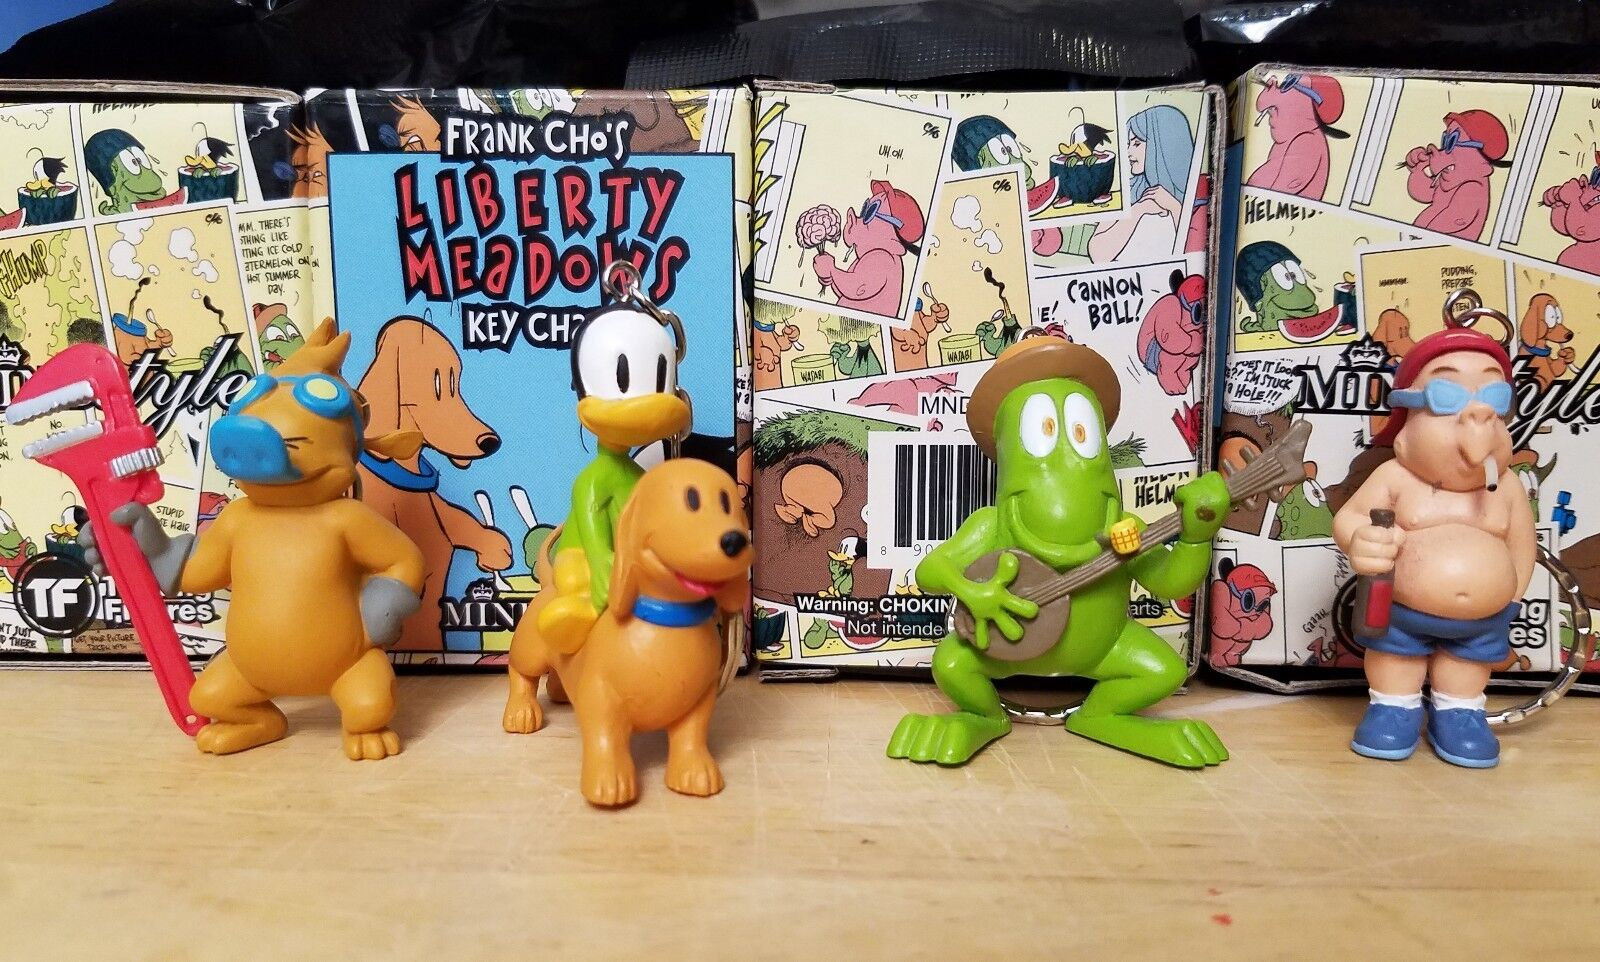 4x Frank Cho Liberty Meadows Vinyl Keychain Figures MindStyle. Dunny comic Kaws